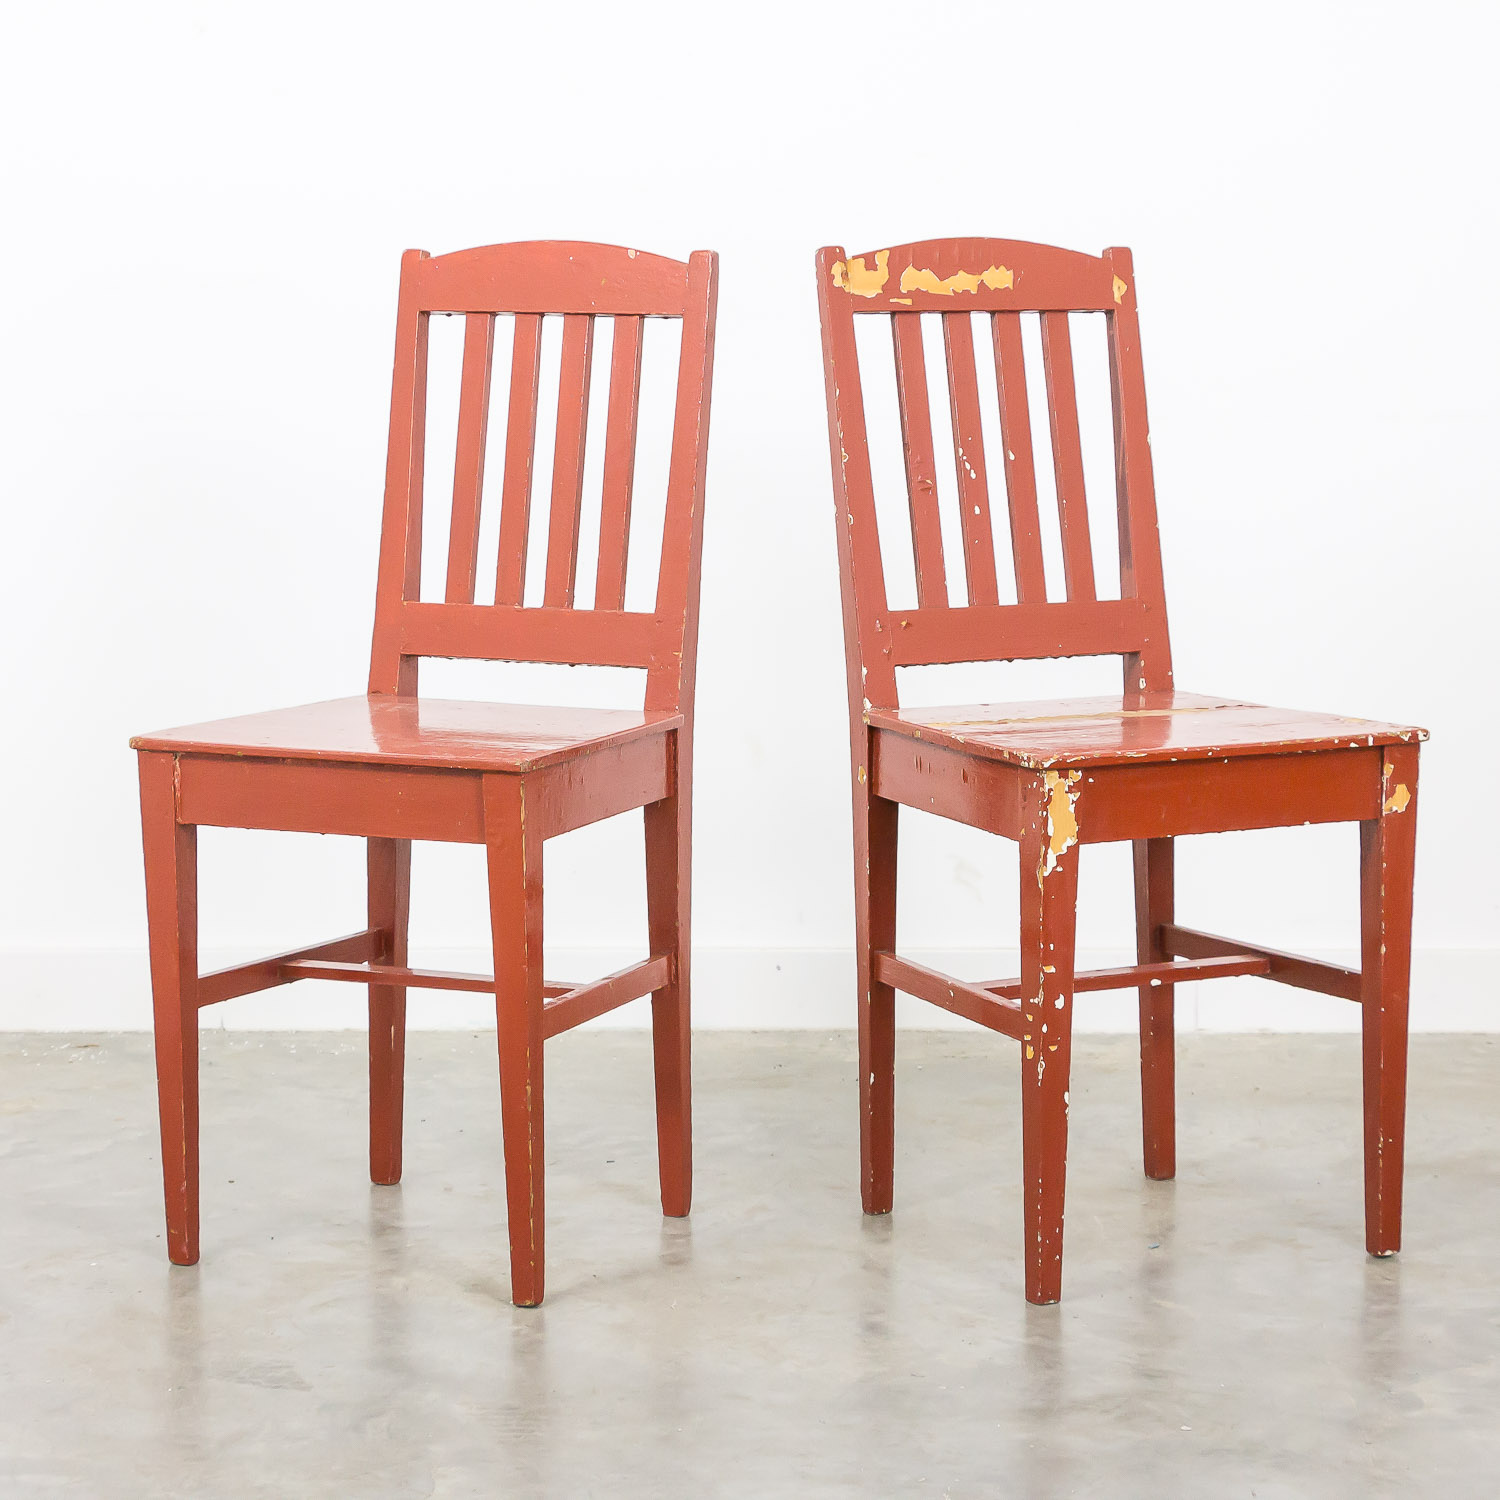 Swedish farmhouse chairs set of 2